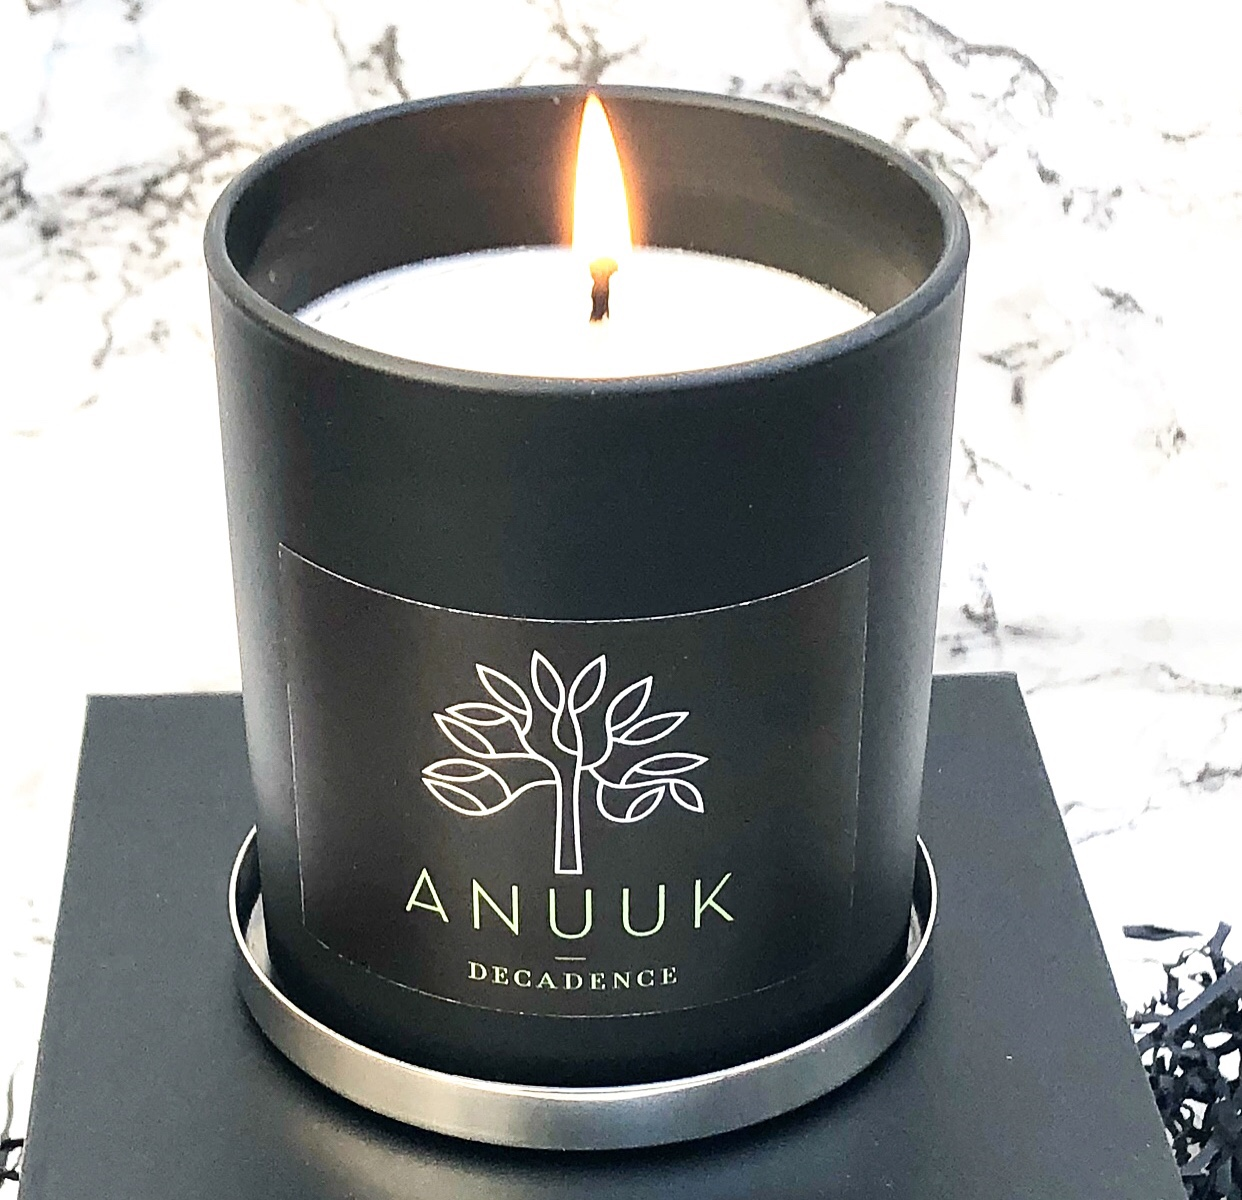 Anuuk Decadence Classic Candle Review